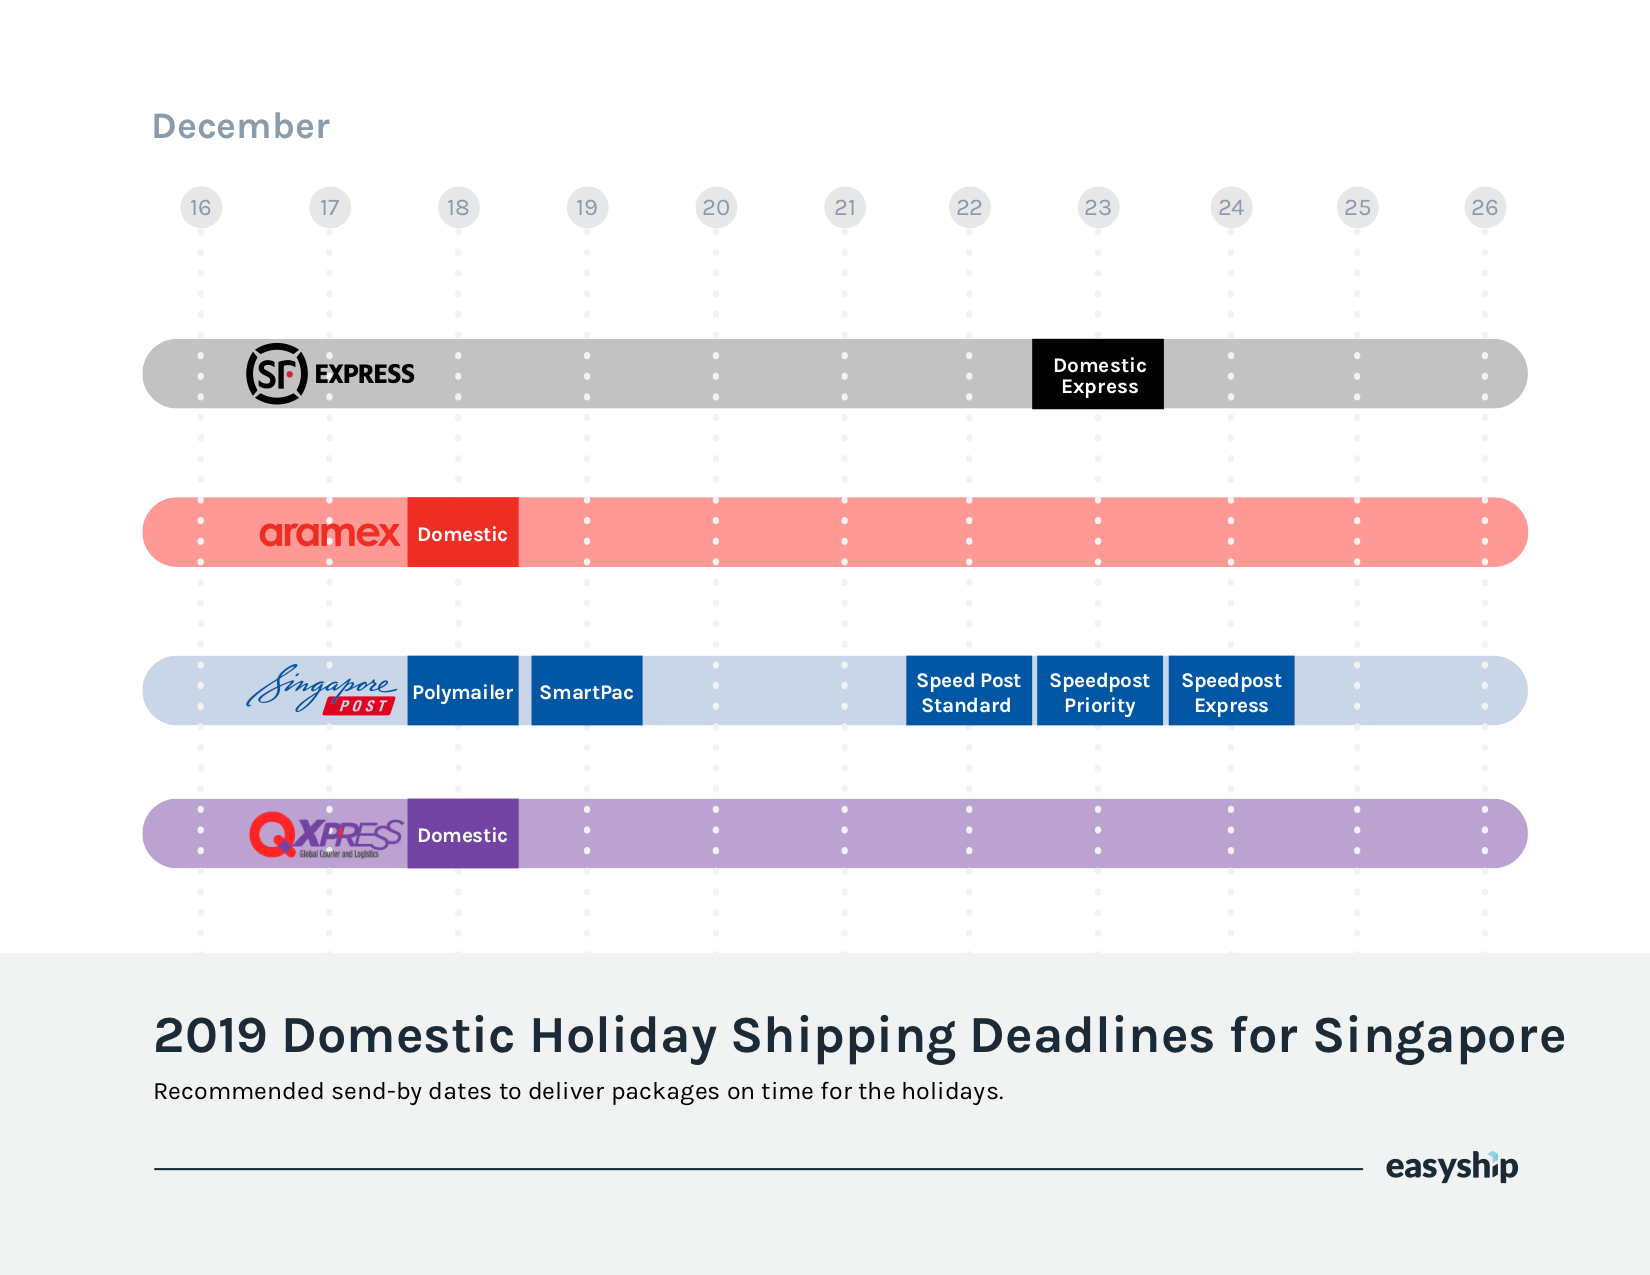 Singapore 2019 Shipping Deadlines for Christmas